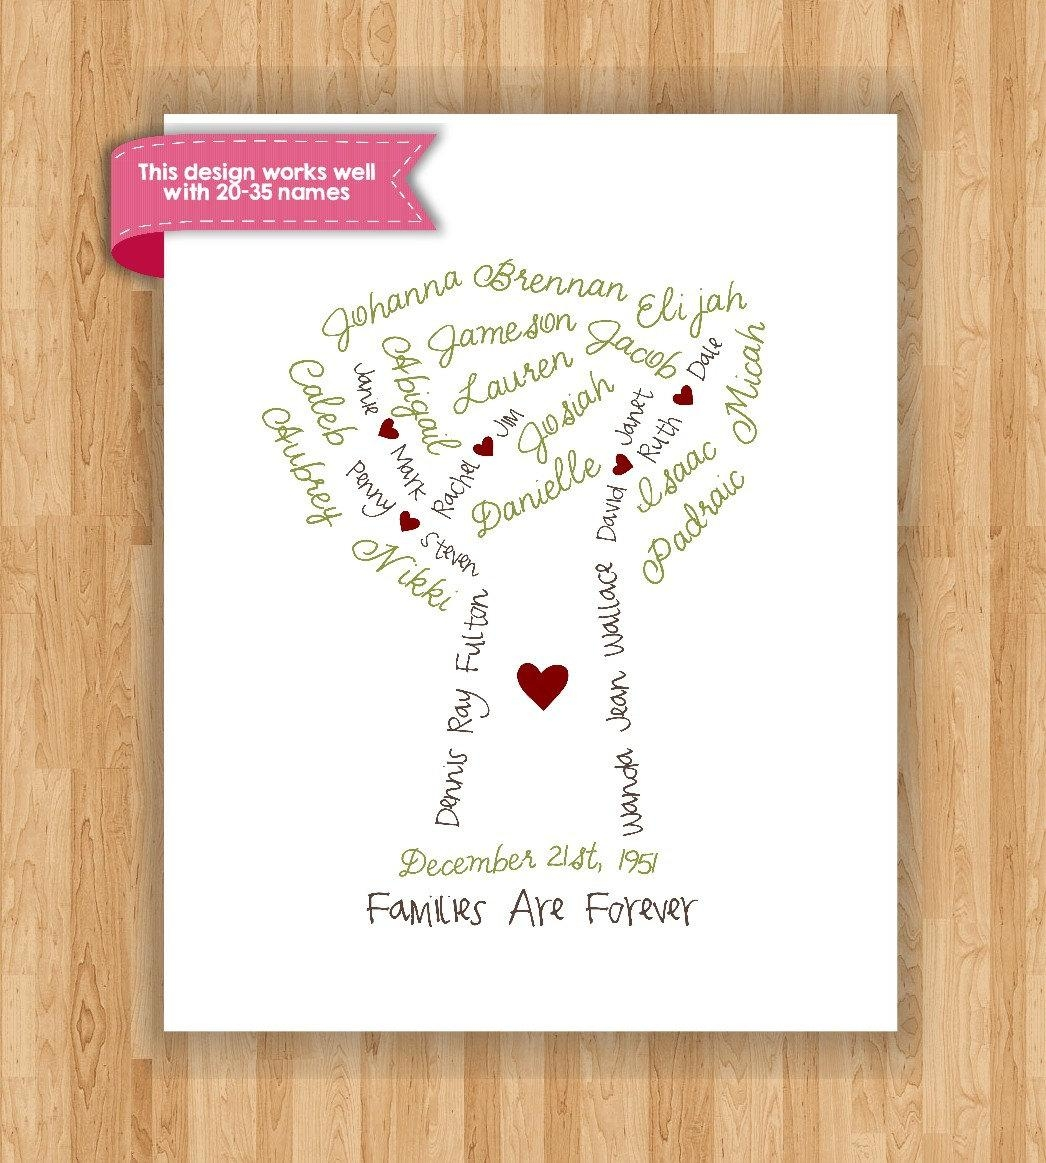 8X10 Wall Art Print Personalized Family Tree Family Throughout Personalized Family Wall Art (View 2 of 20)